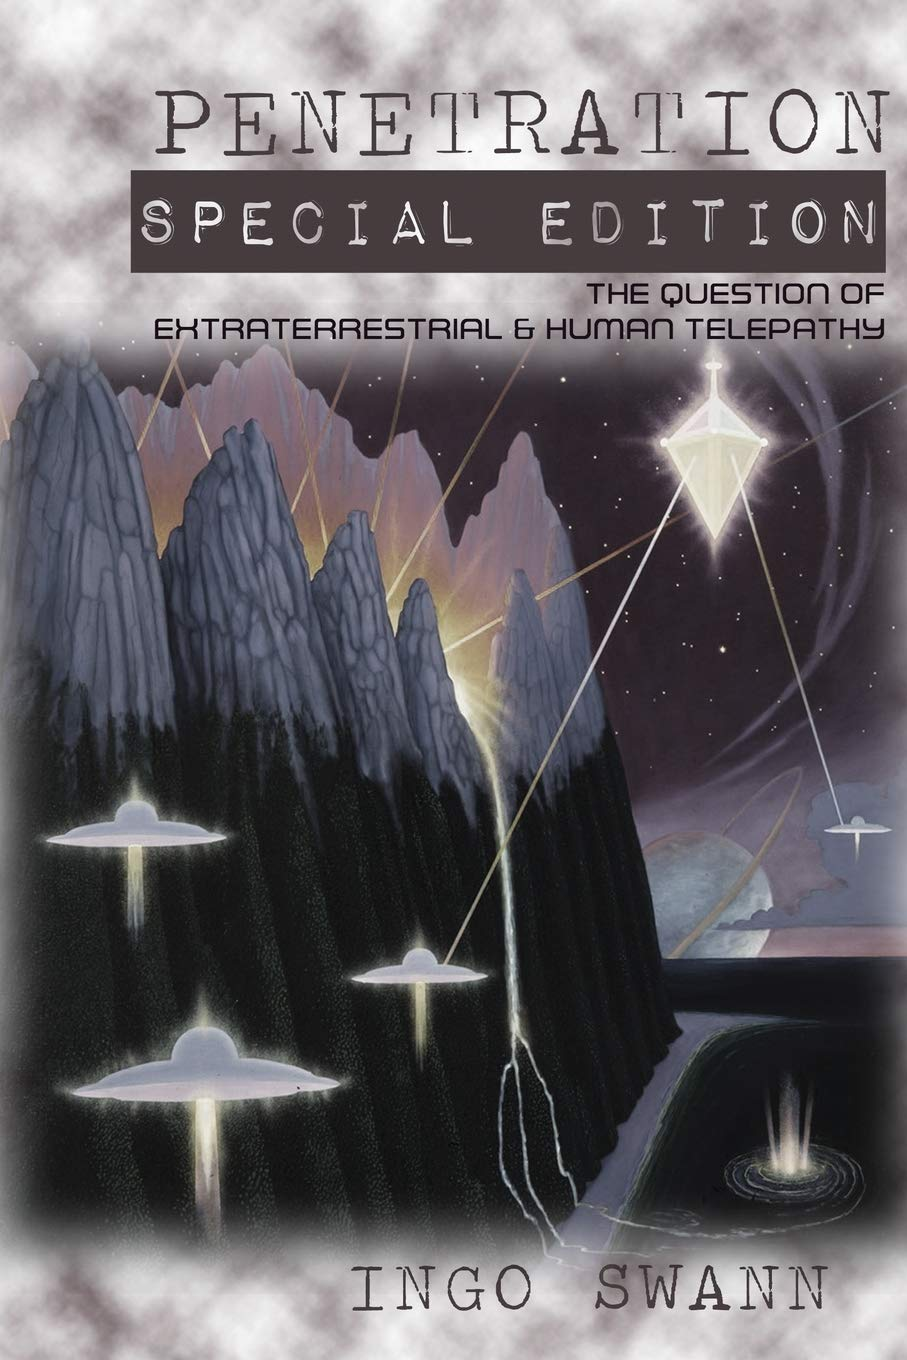 Penetration: Special Edition: The Question of Extraterrestrial and Human Telepathy: Swann, Ingo: Amazon.com.au: Books